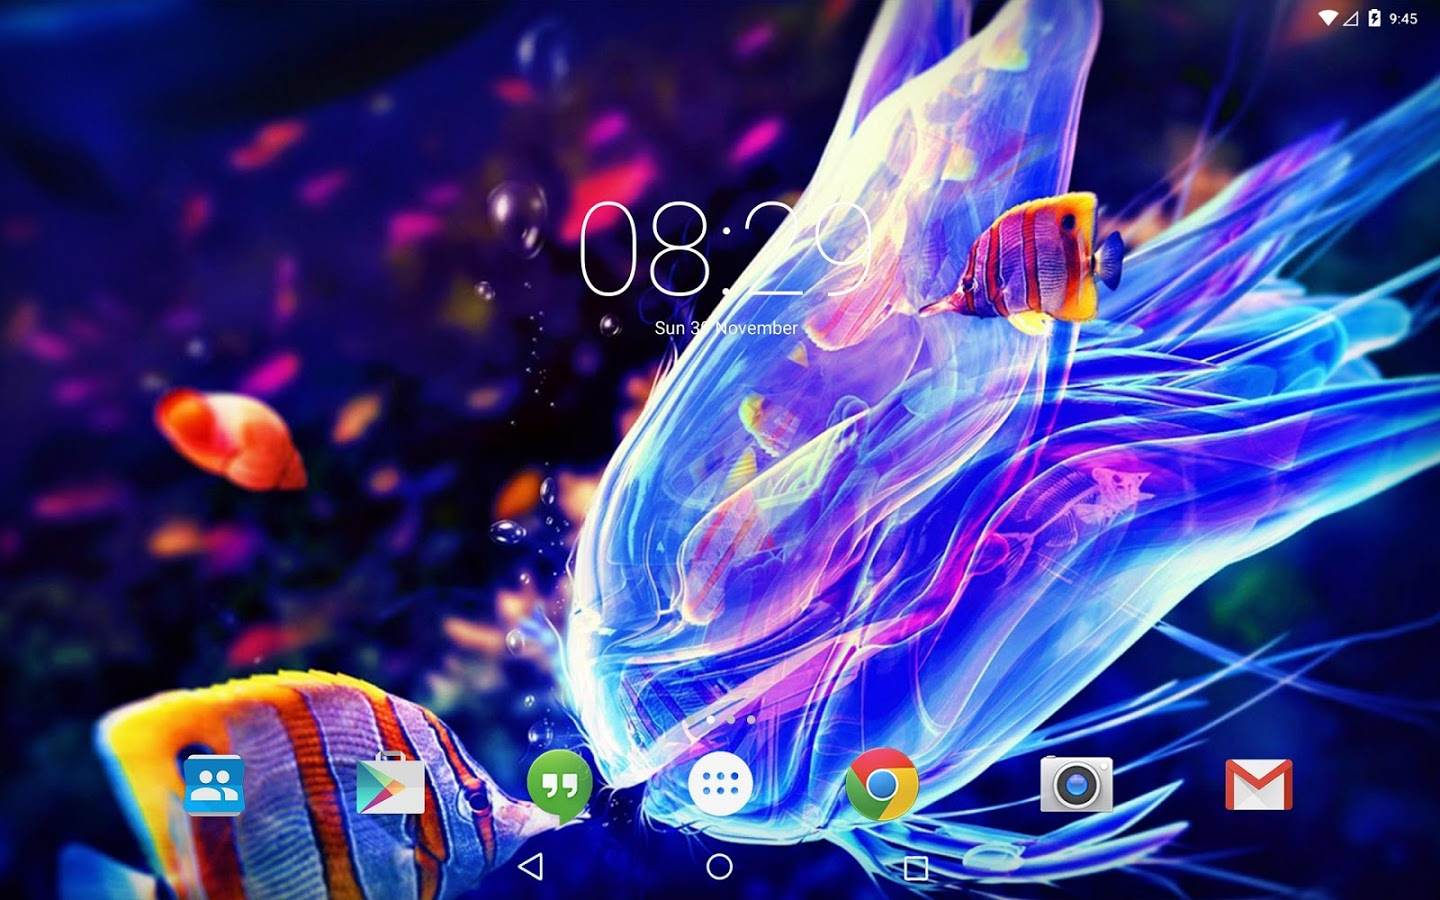 jellyfish medusa live wallpaper apk thing android apps